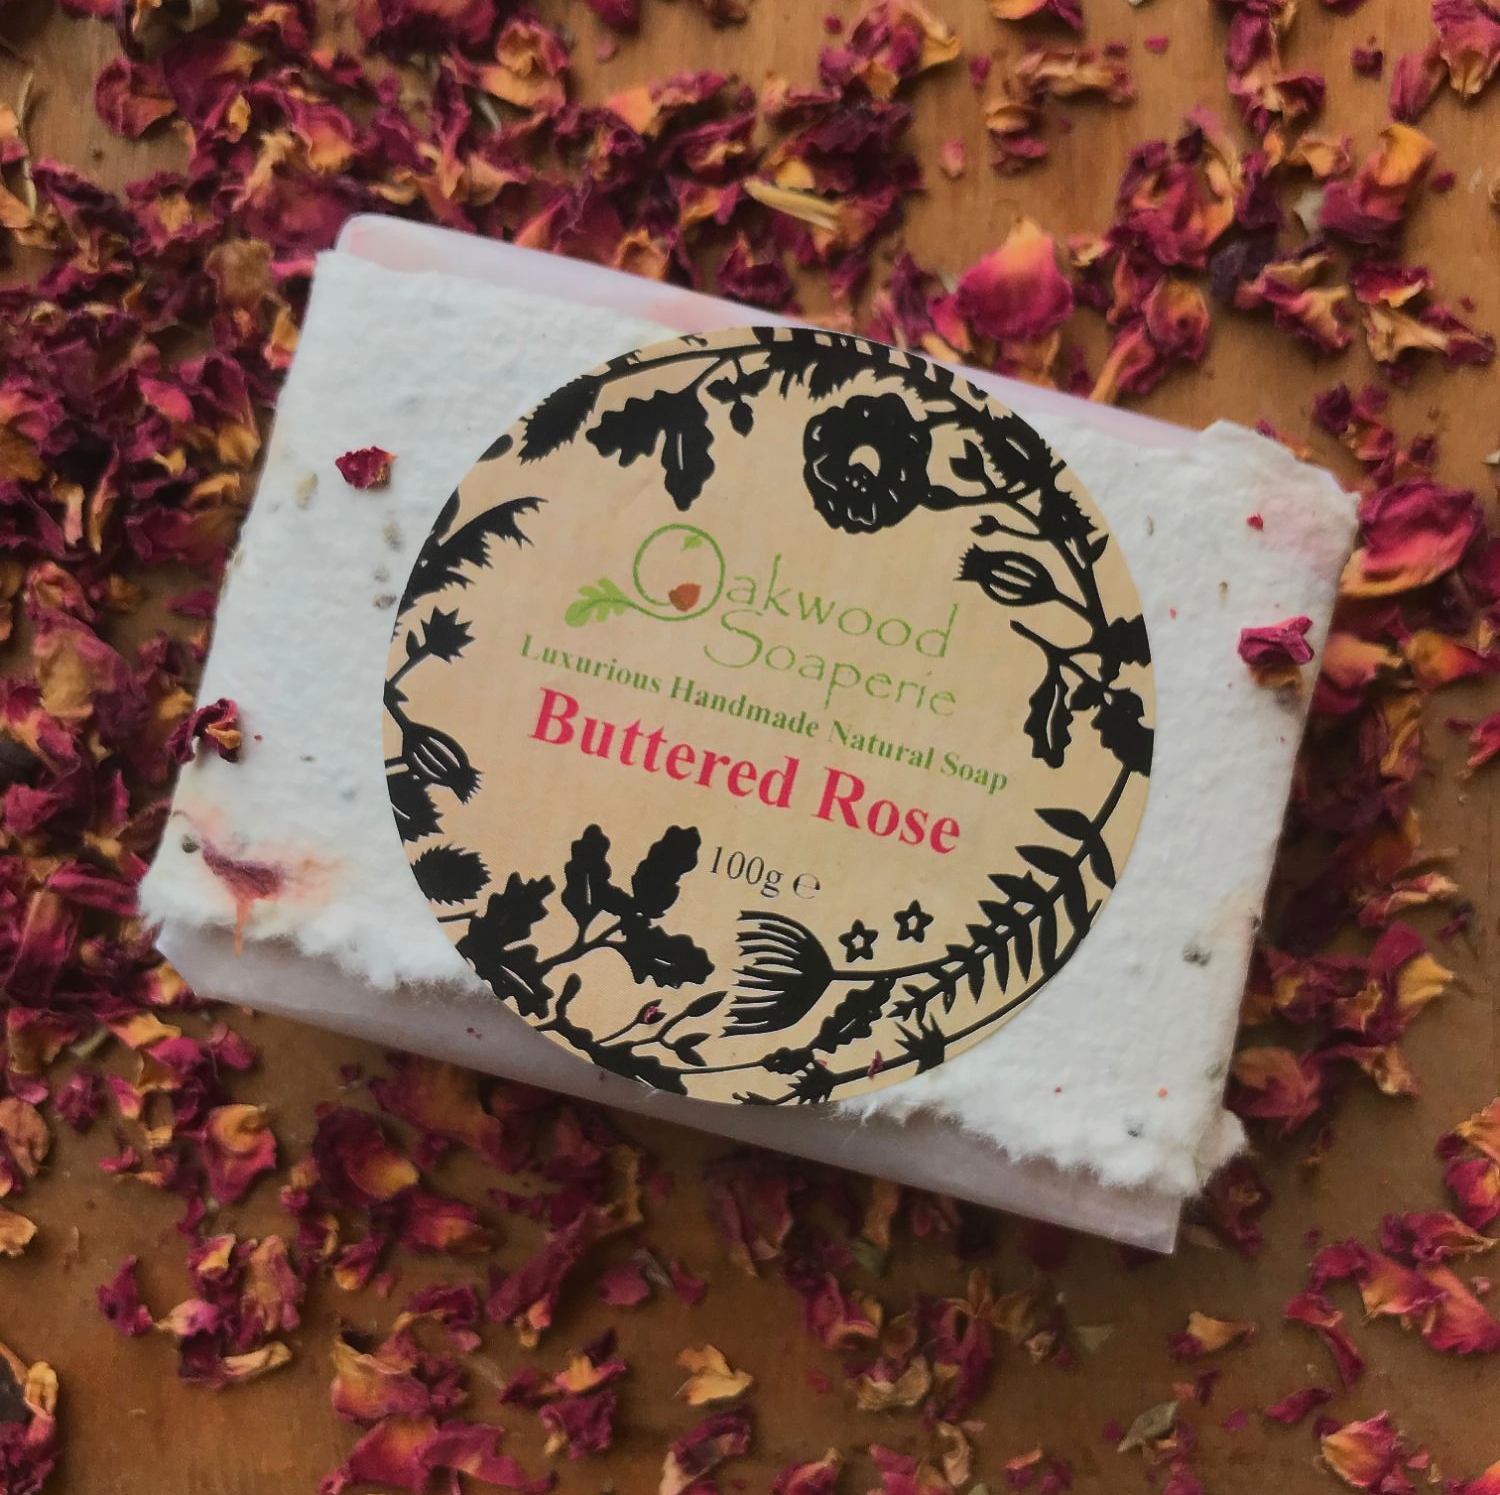 Buttered Rose soap in wildflower paper